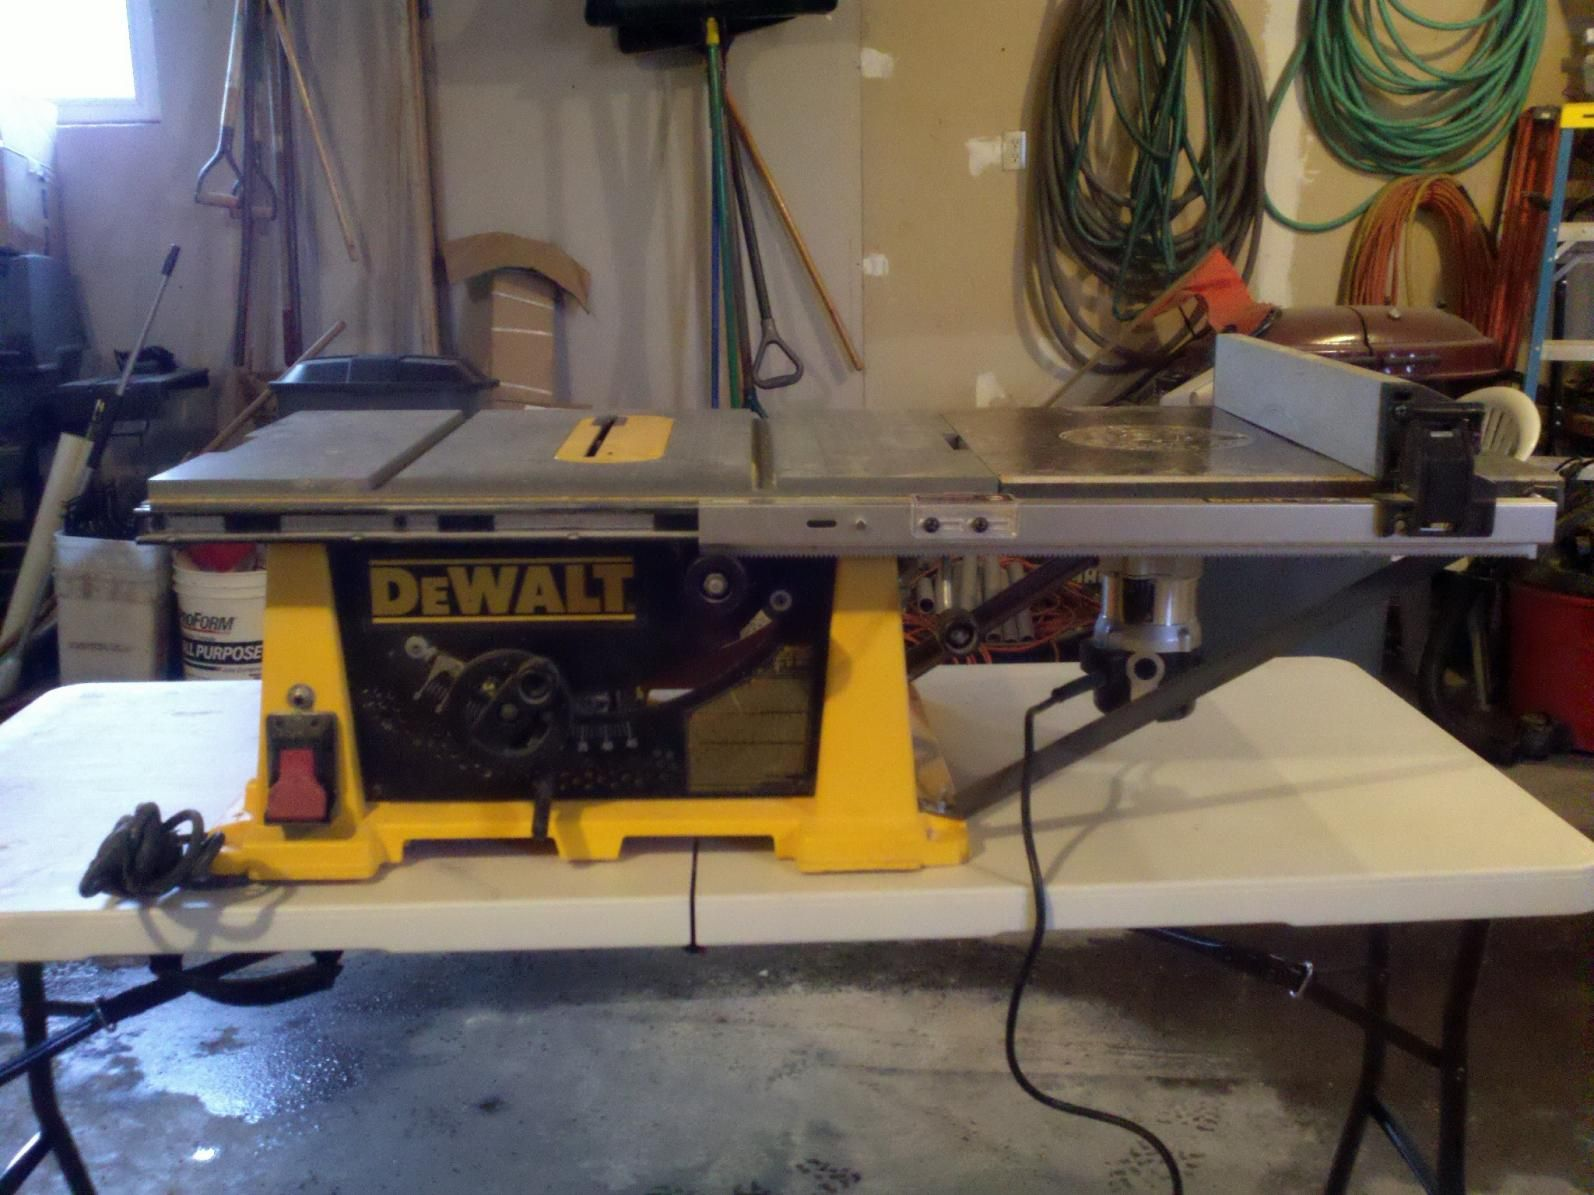 Cool idea to add a router table to existing table saw for small cool idea to add a router table to existing table saw for small spaces keyboard keysfo Choice Image